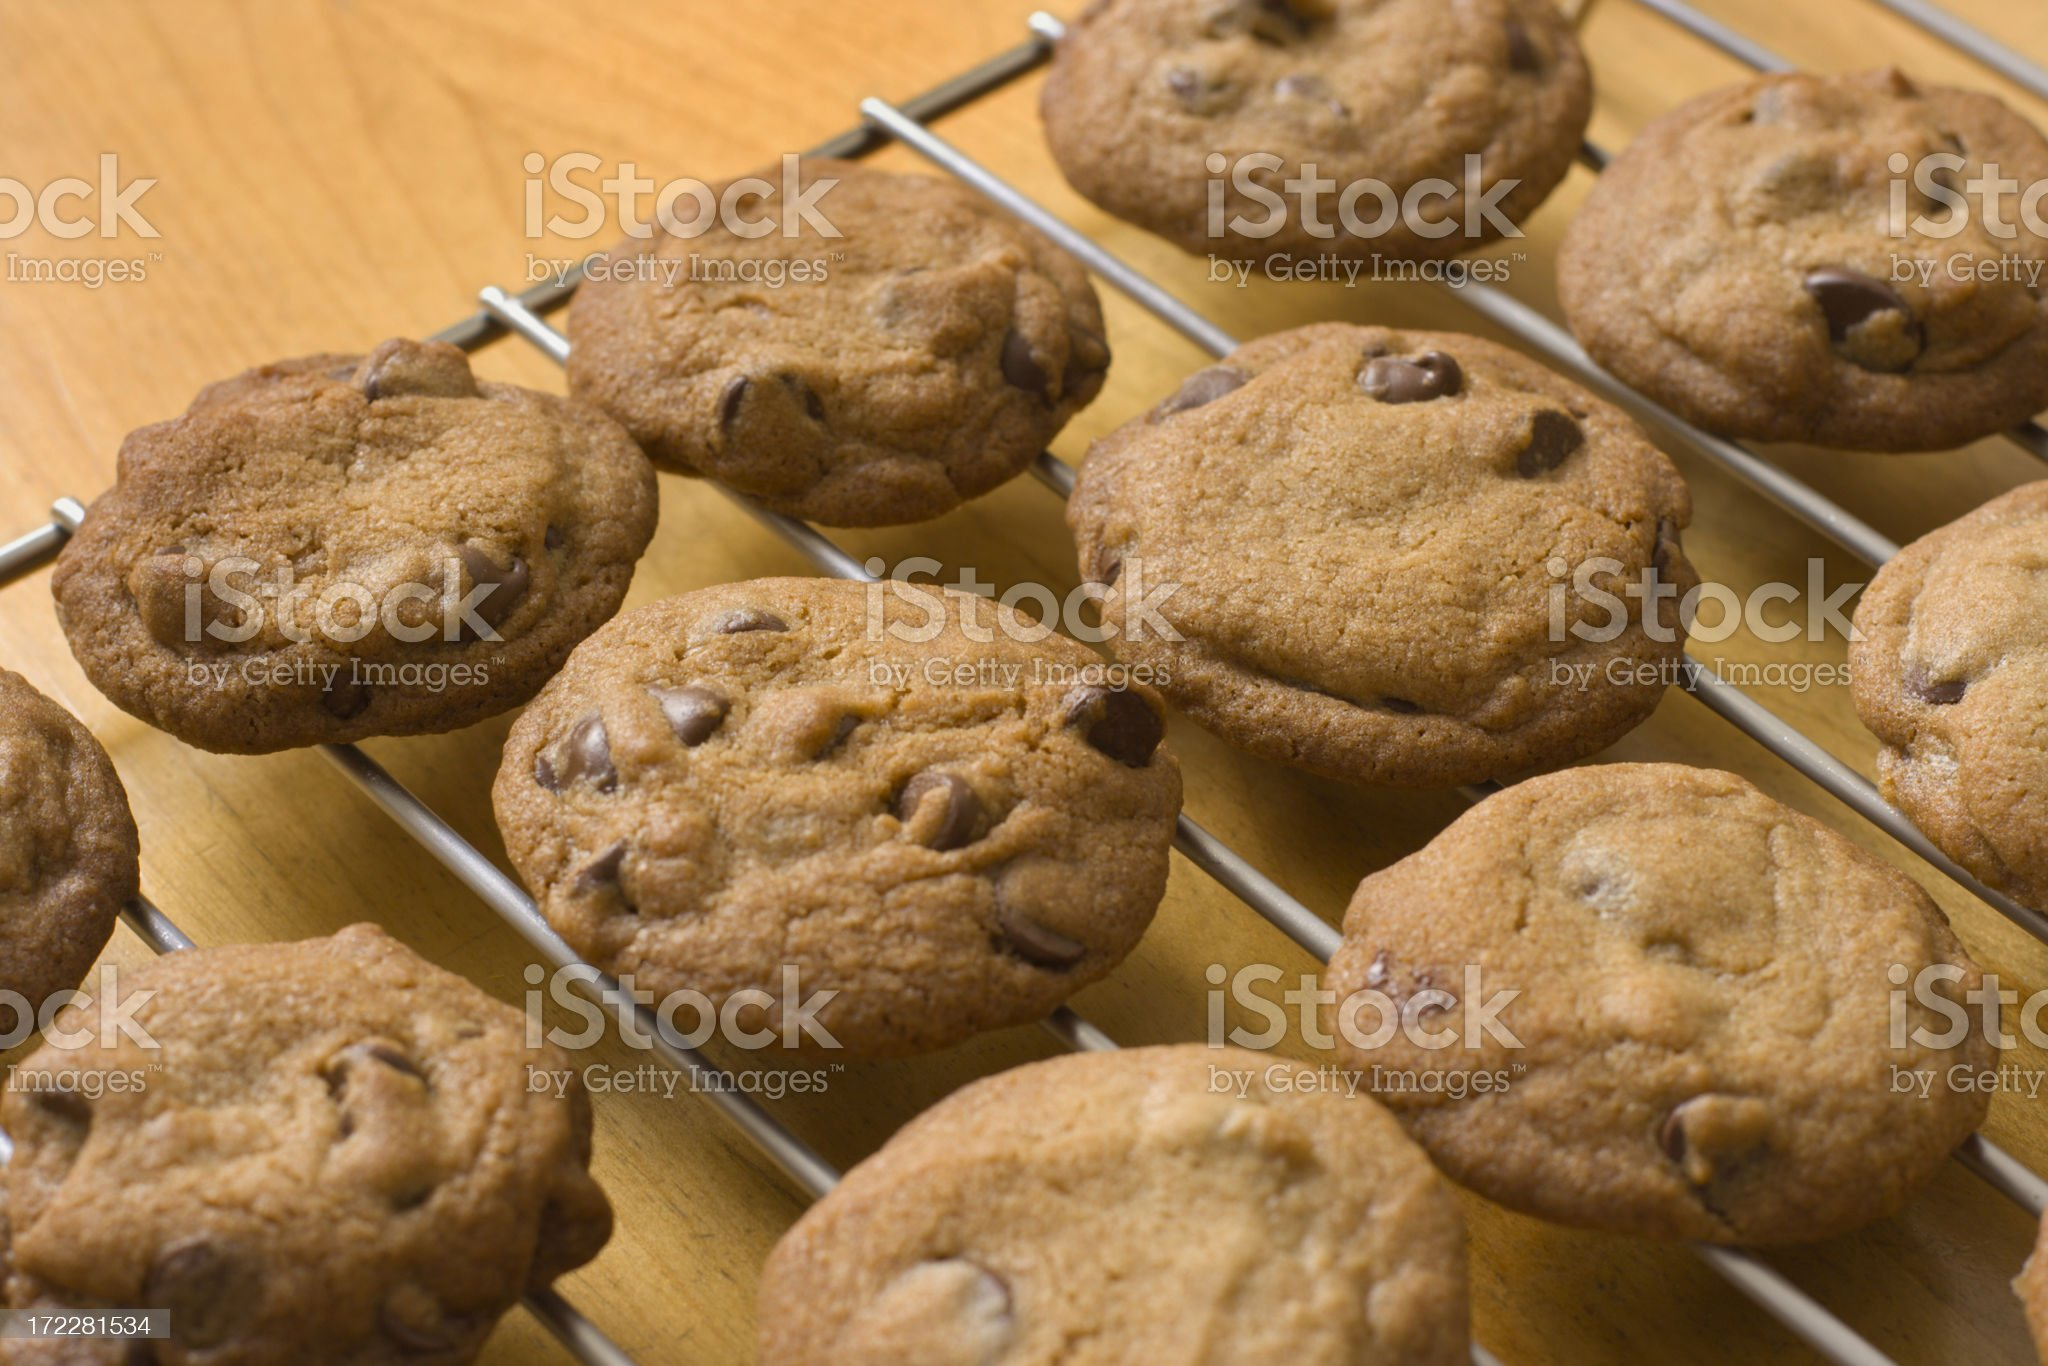 Baked Chocolate Chip Cookies, Homemade, Oven Fresh on Cooling Rack royalty-free stock photo